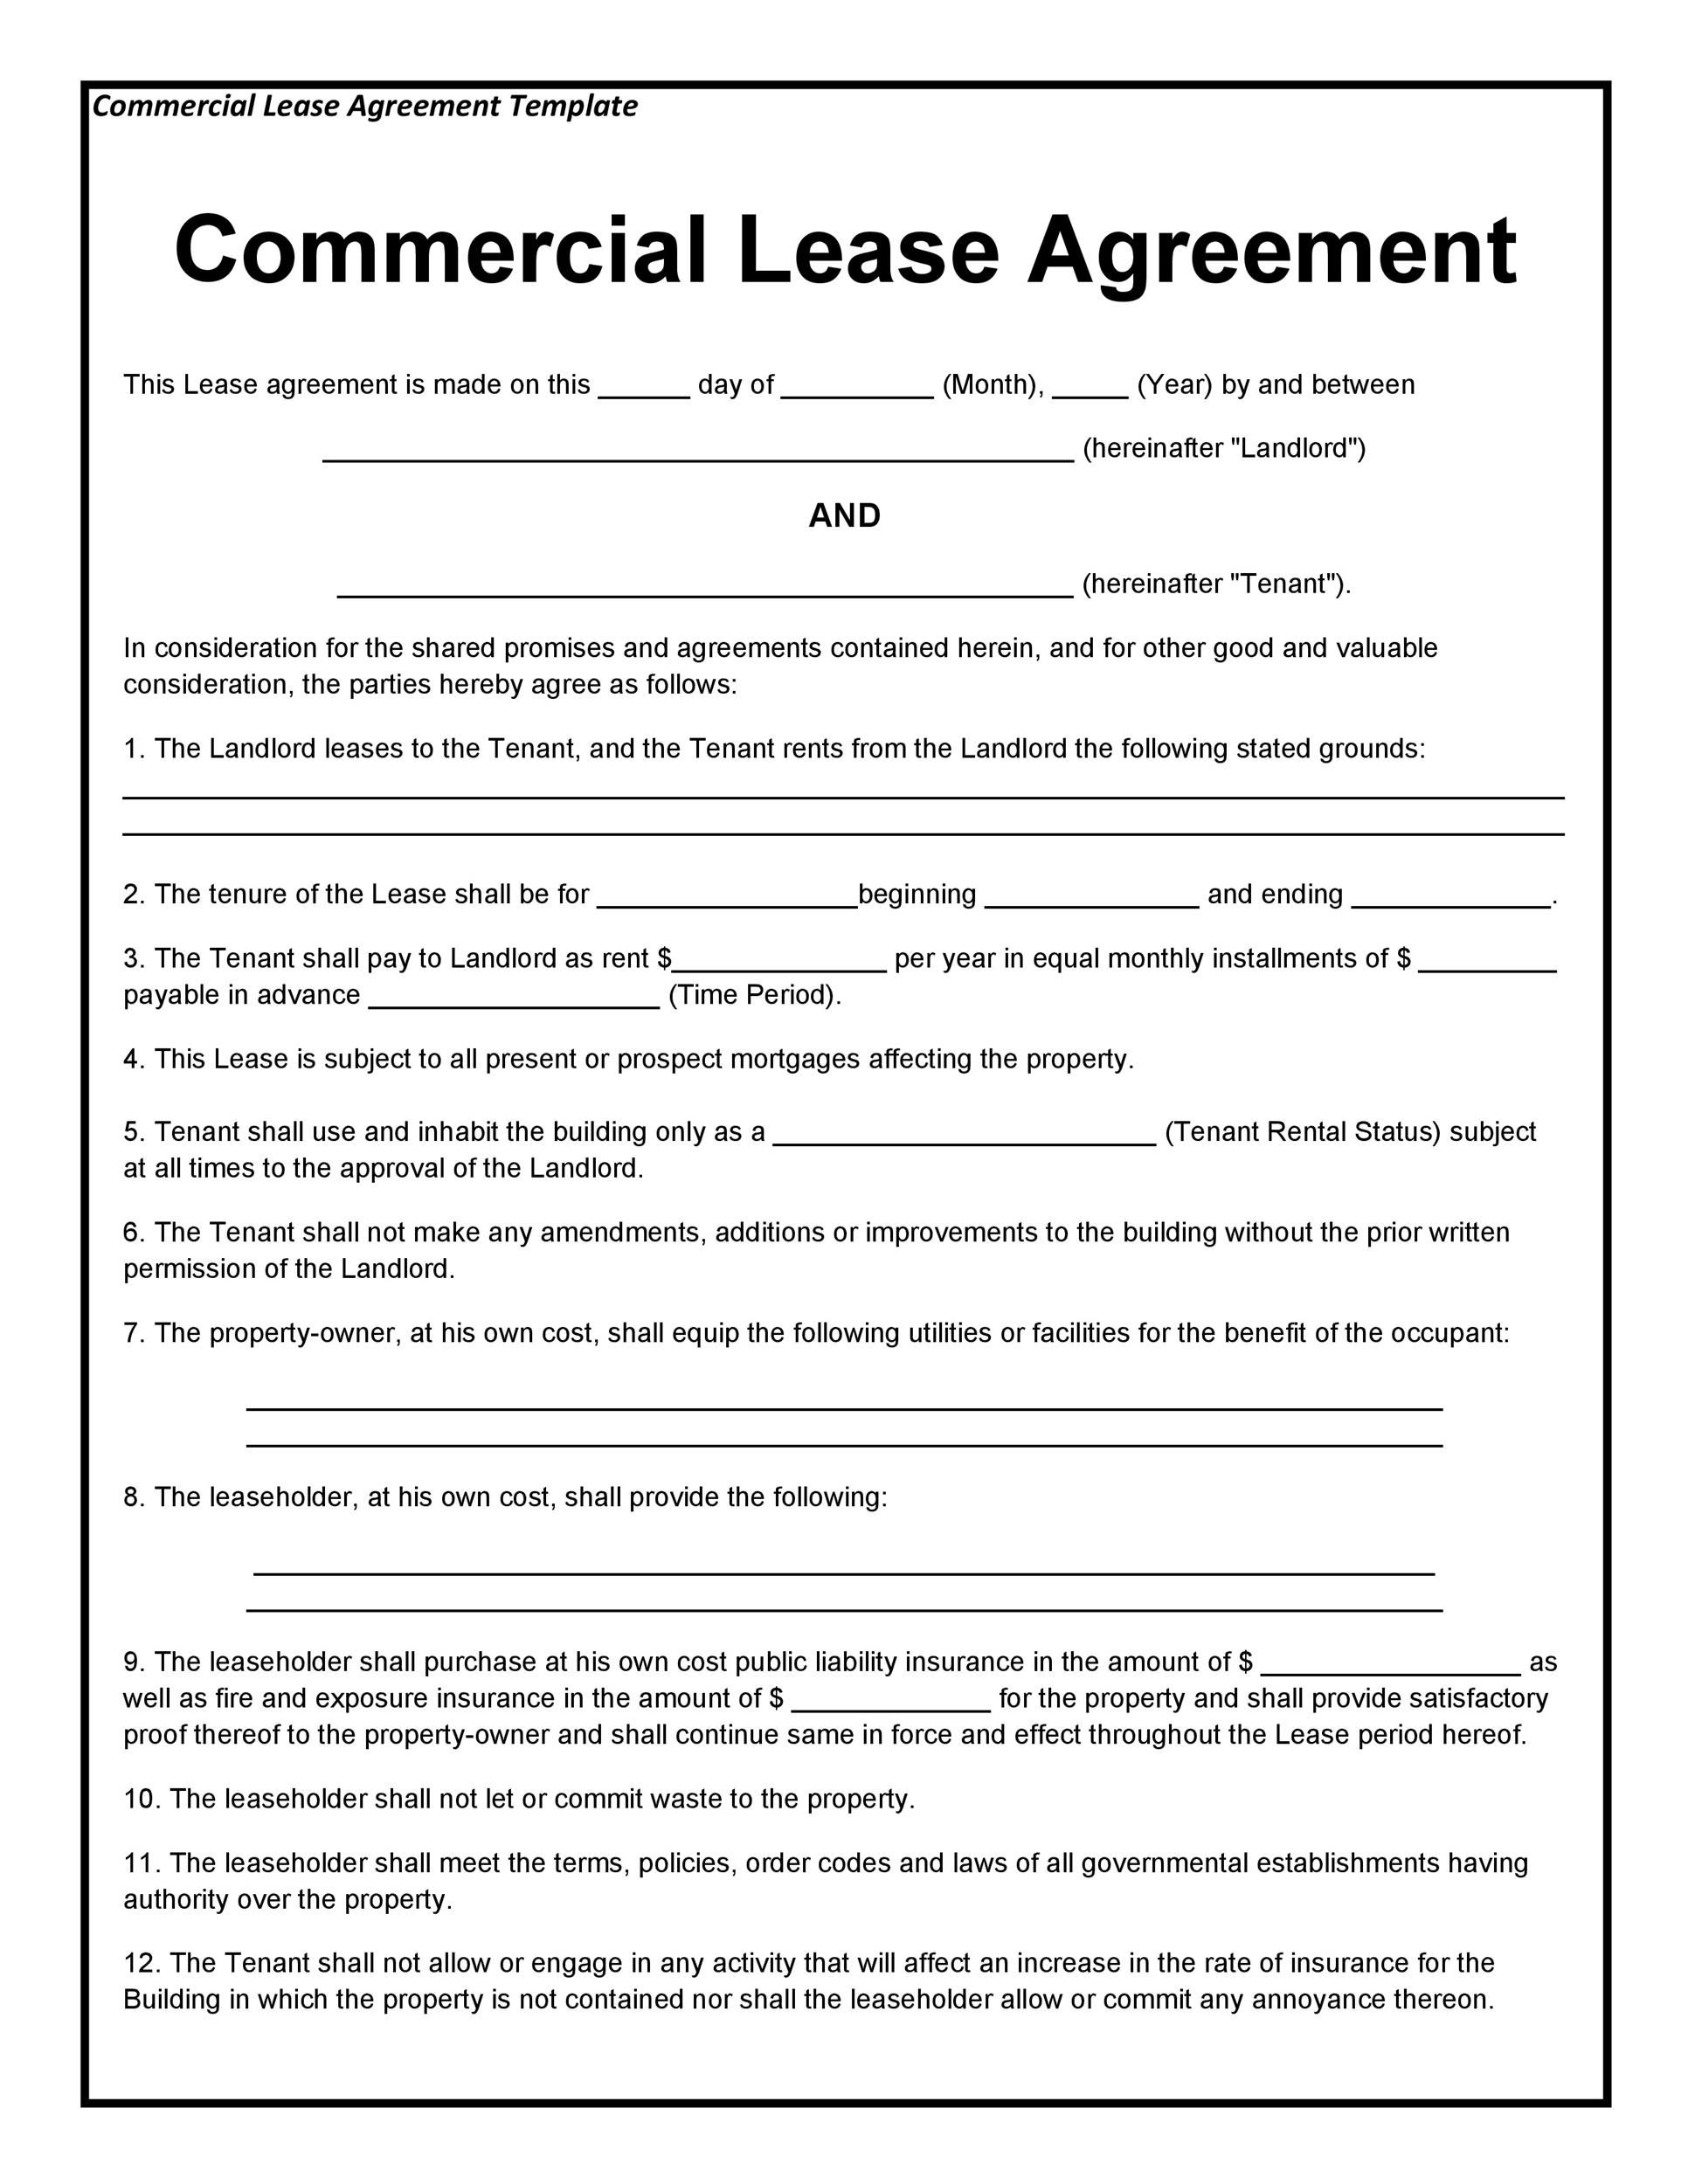 005 Outstanding Rental House Contract Template Free Image  Agreement Form Property LeaseFull